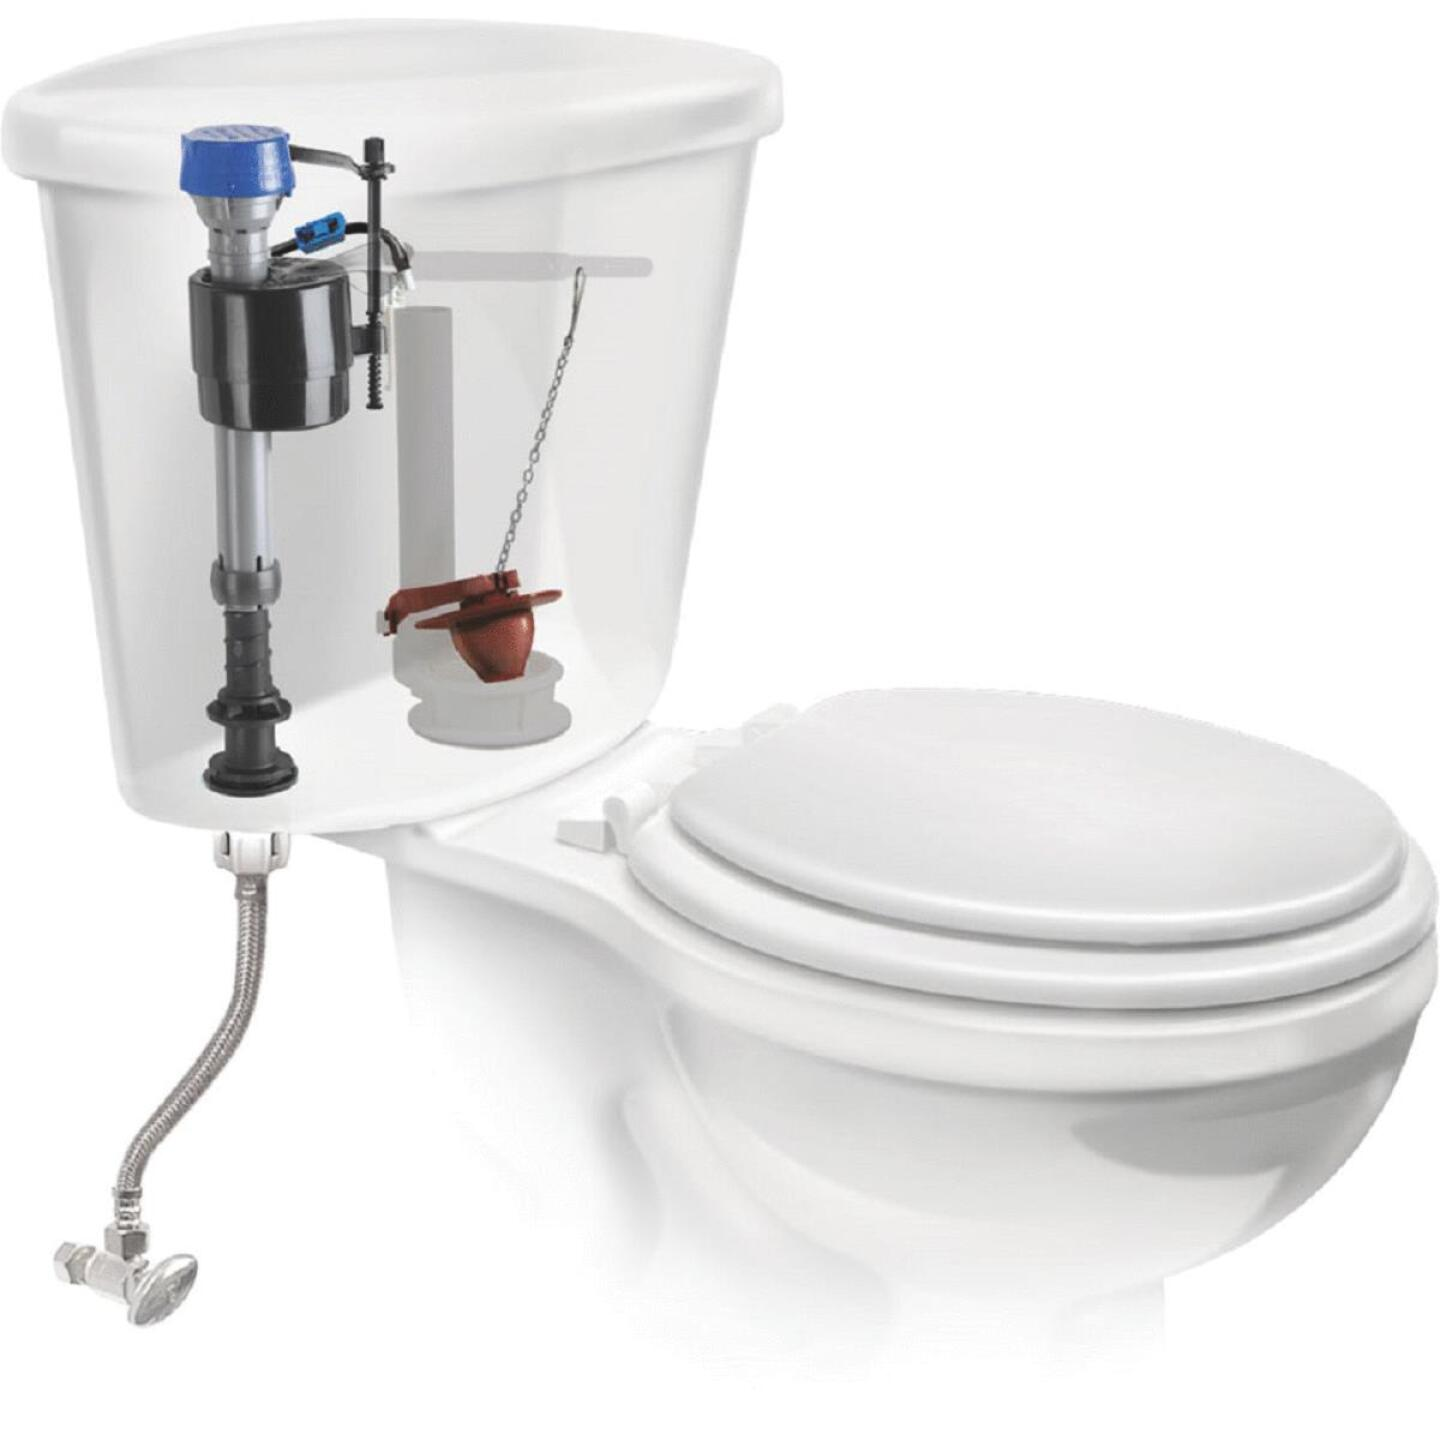 Fluidmaster PerforMAX Fill Valve, Adjustable Flapper & 12 In. Universal Click Seal Toilet Connector  Image 3